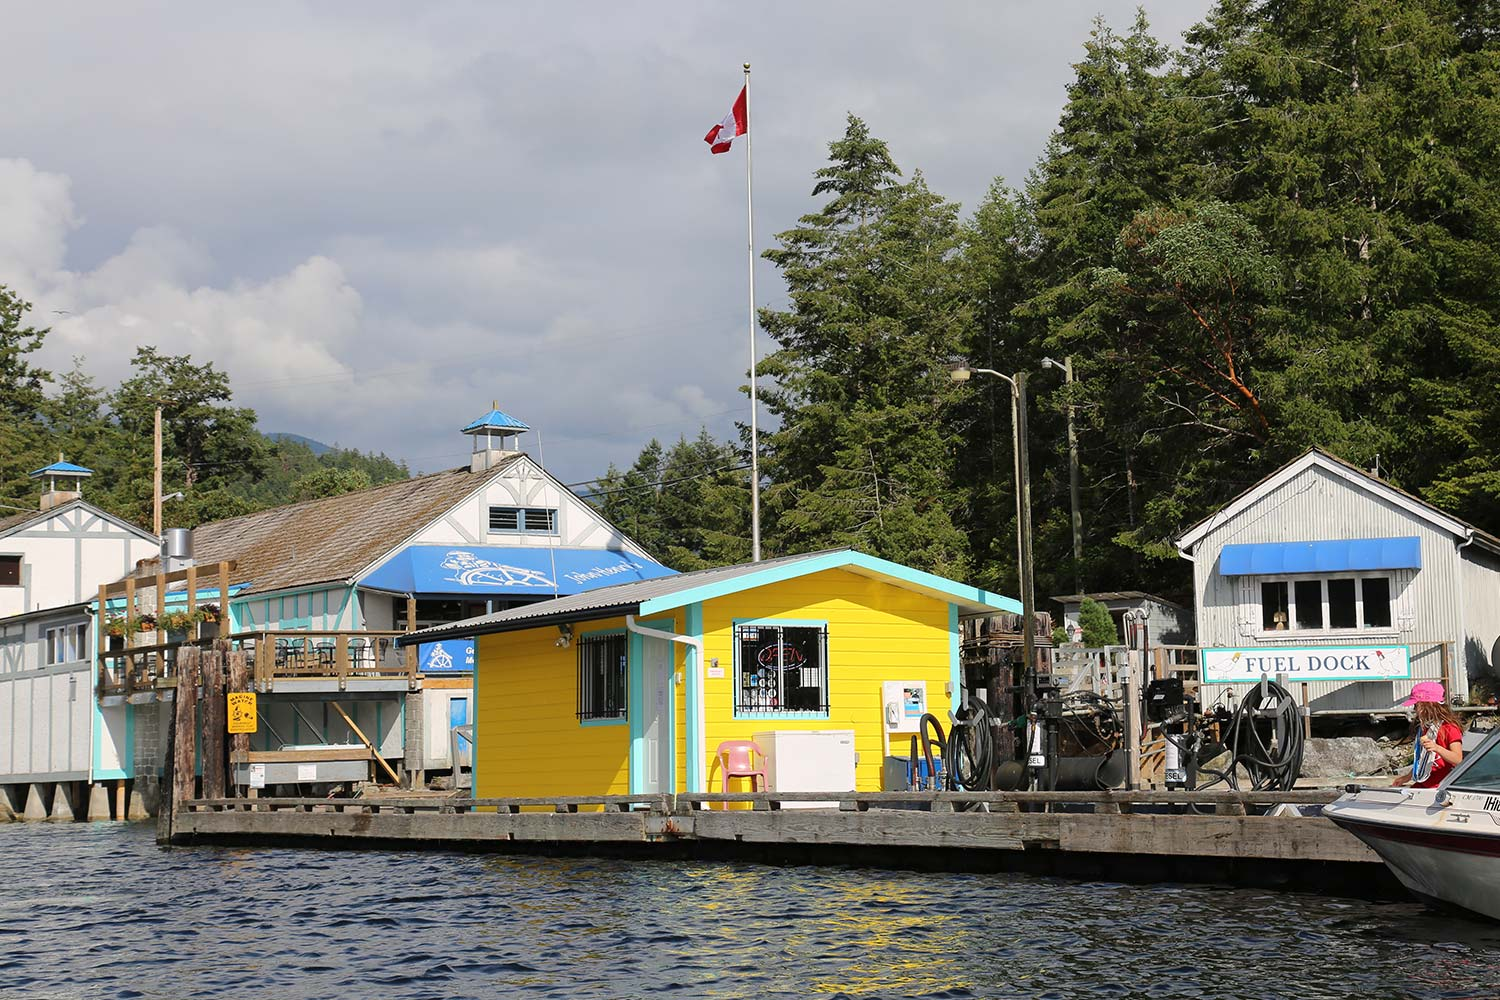 The fuel dock at John Henry's Marina & Resort. Marine gas and diesel available.